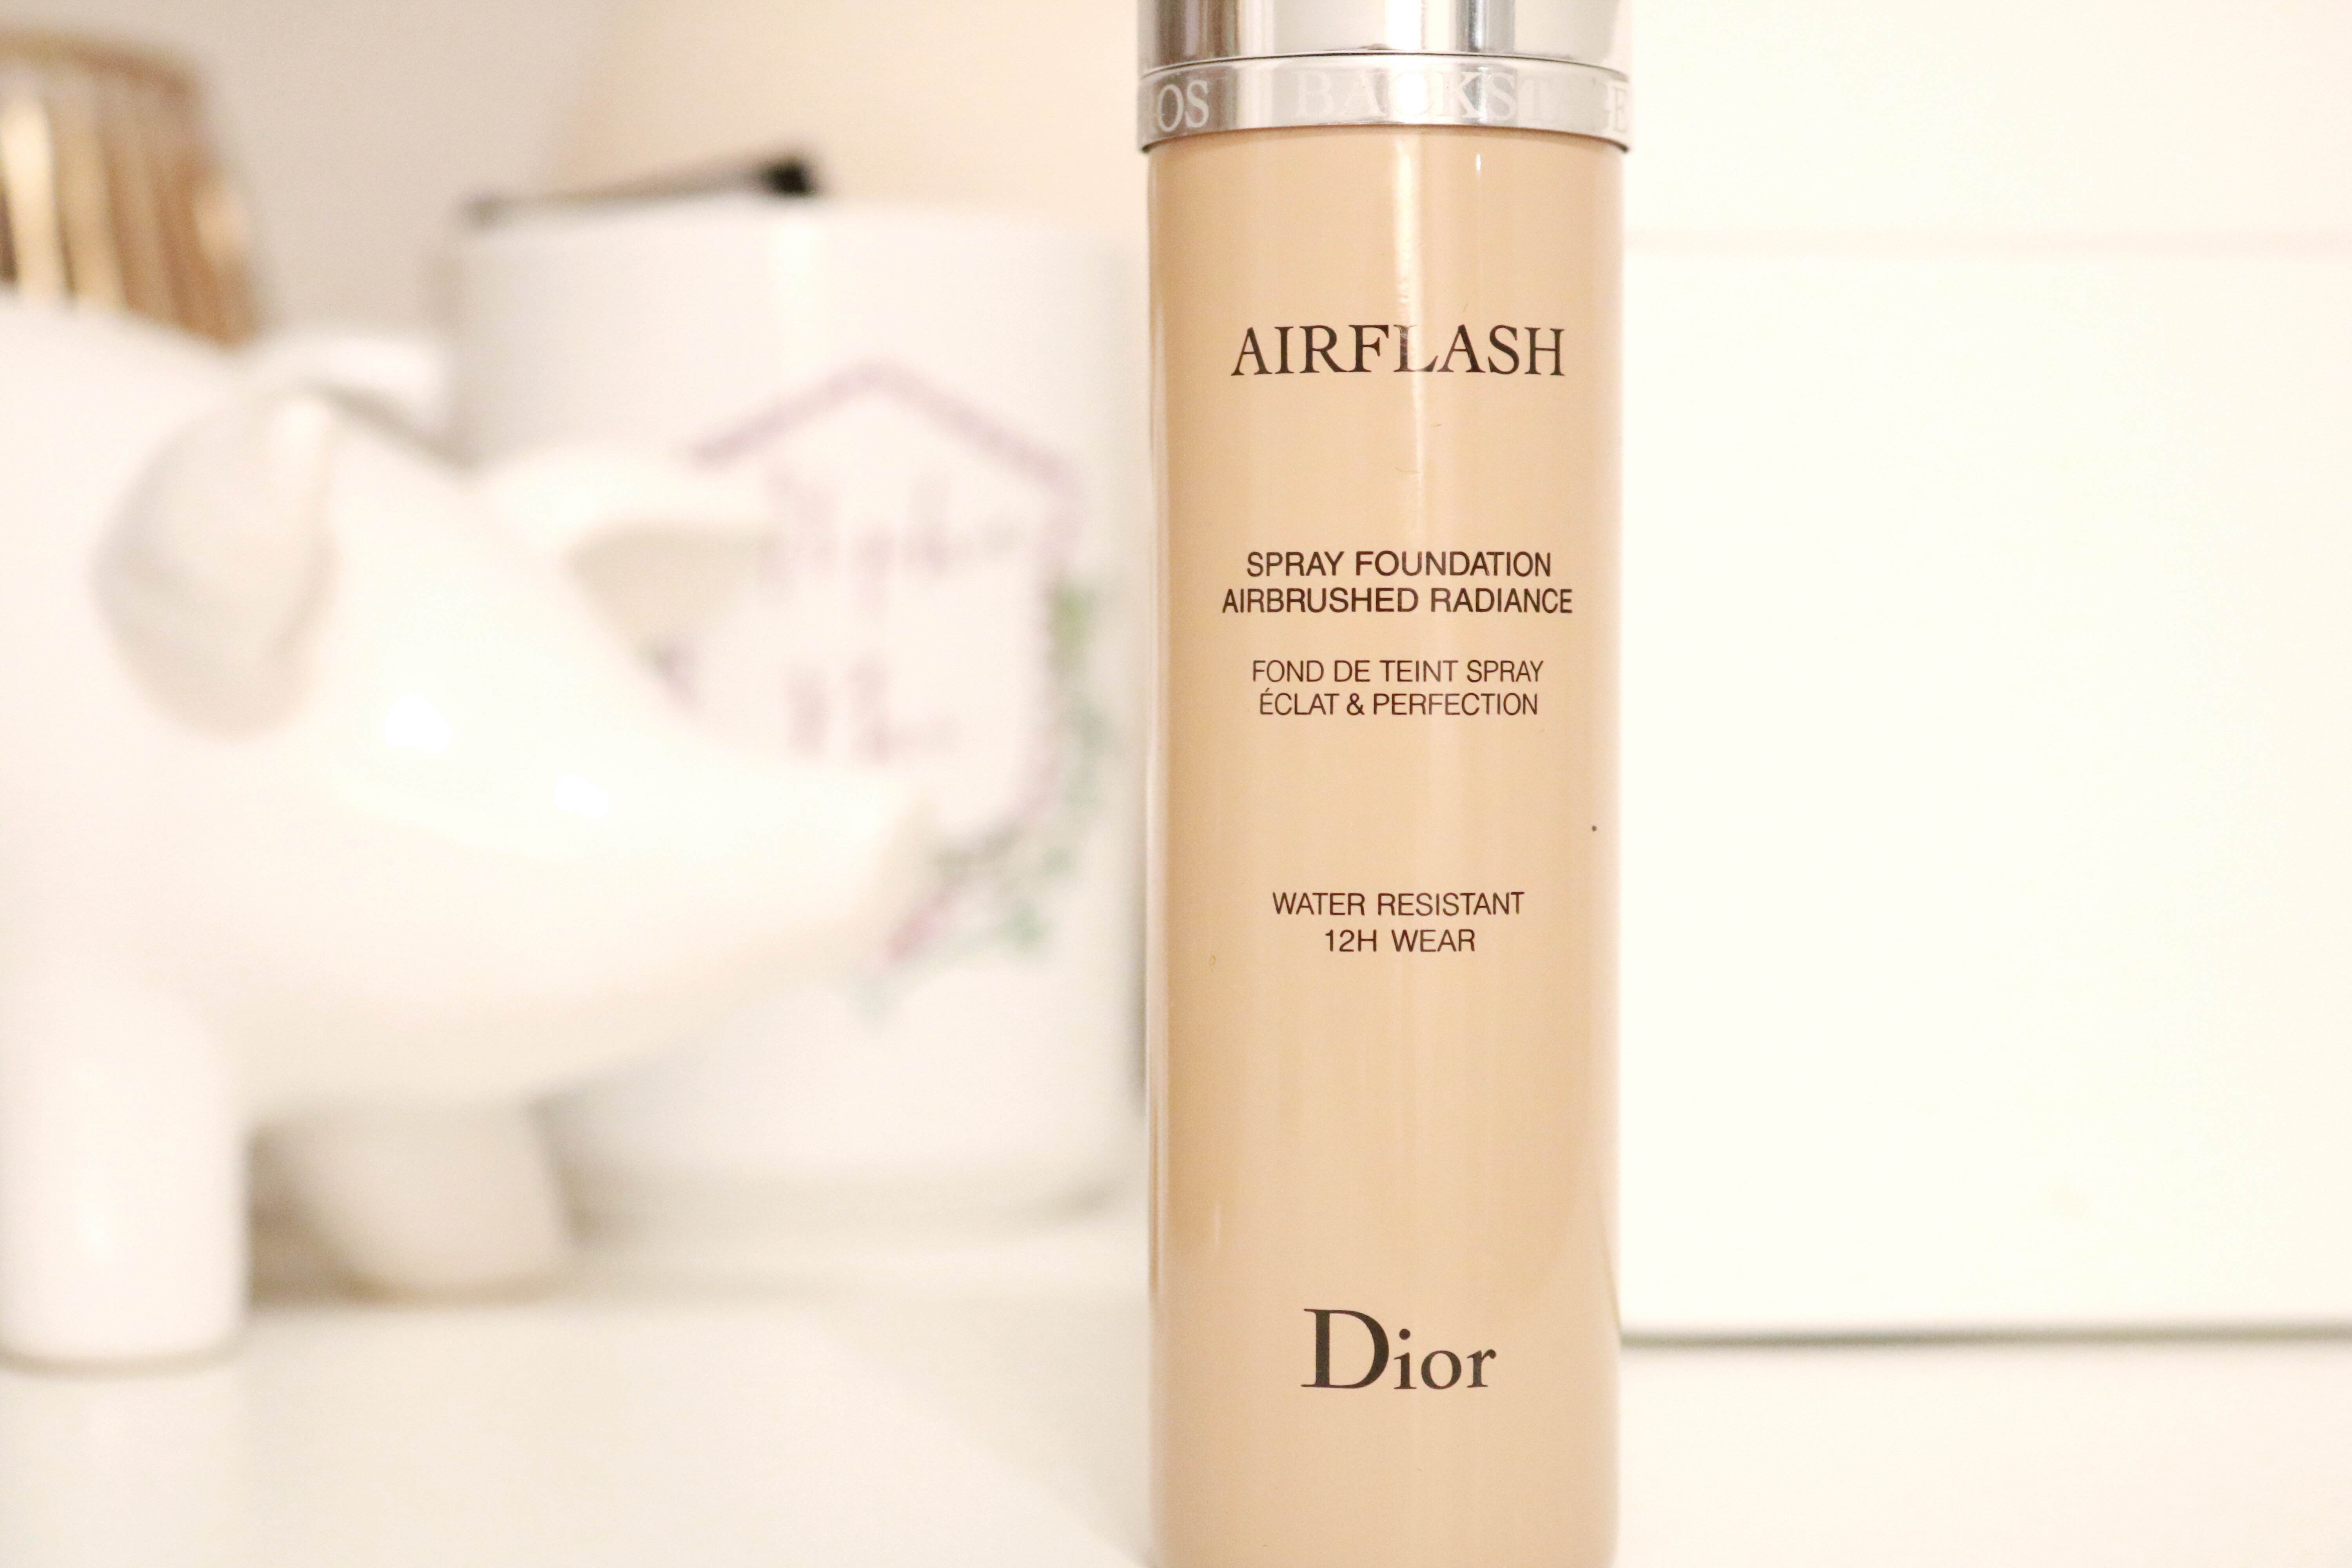 Dior Airflash foundation